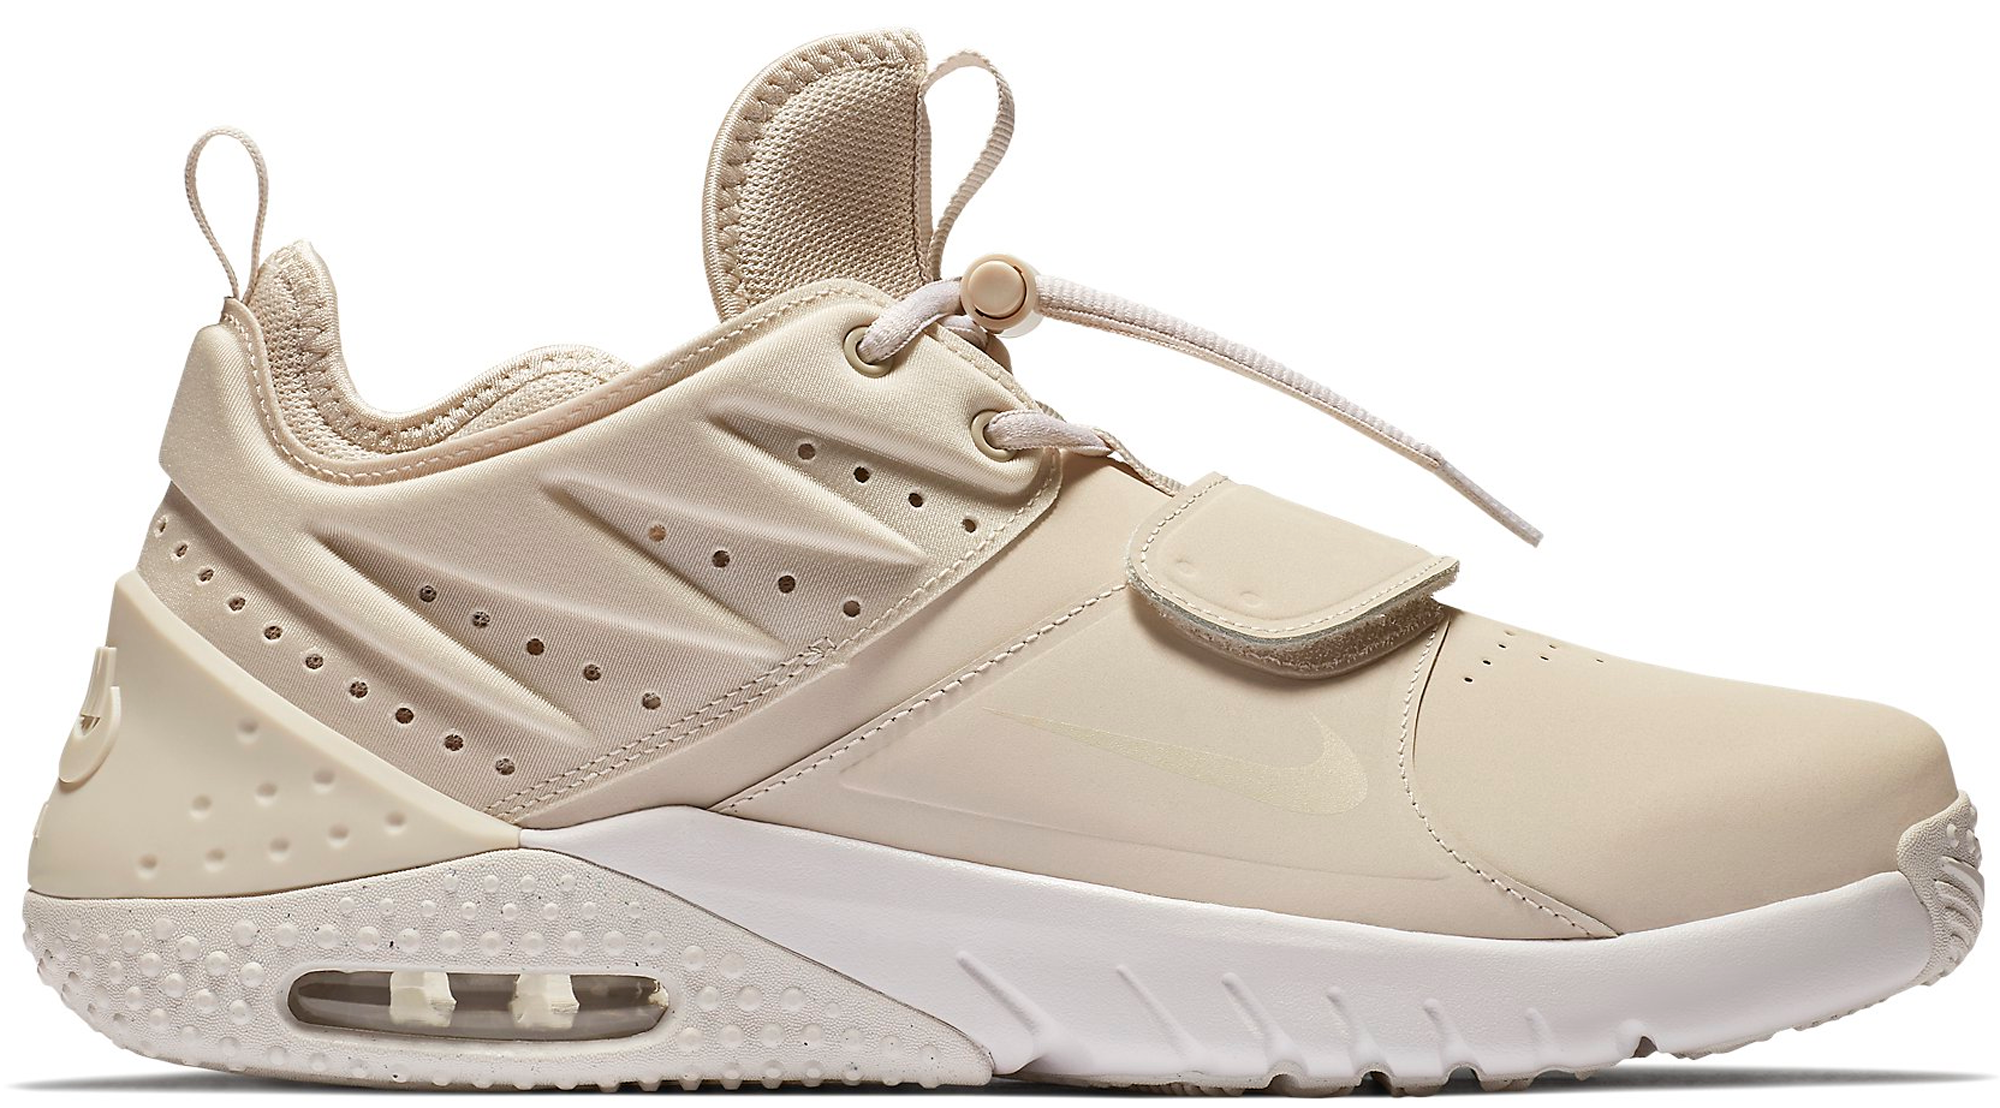 Nike Air Max Trainer 1 Leather Desert